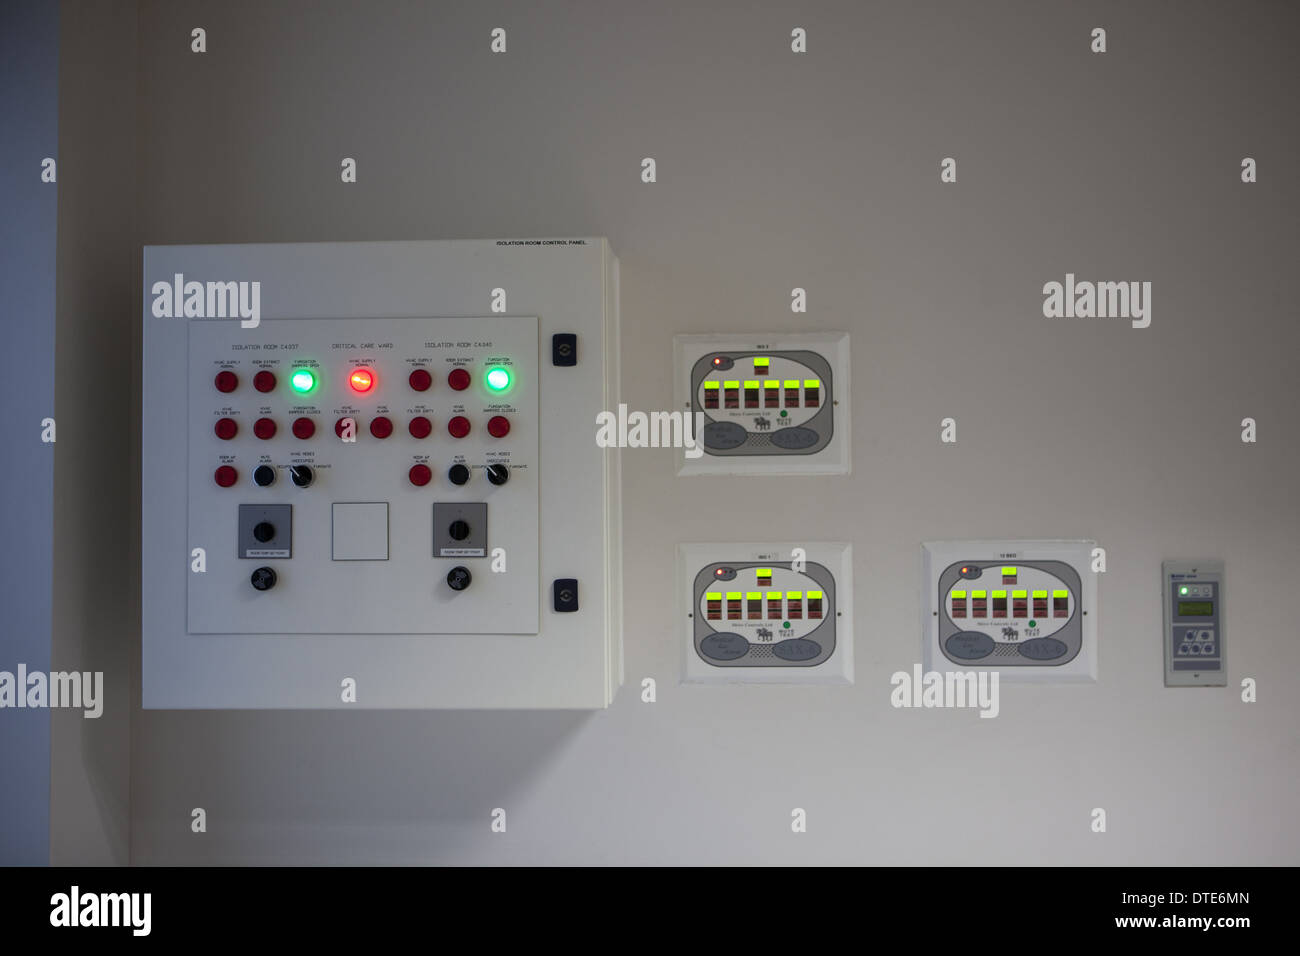 operating theatre medical gases monitor panel - Stock Image